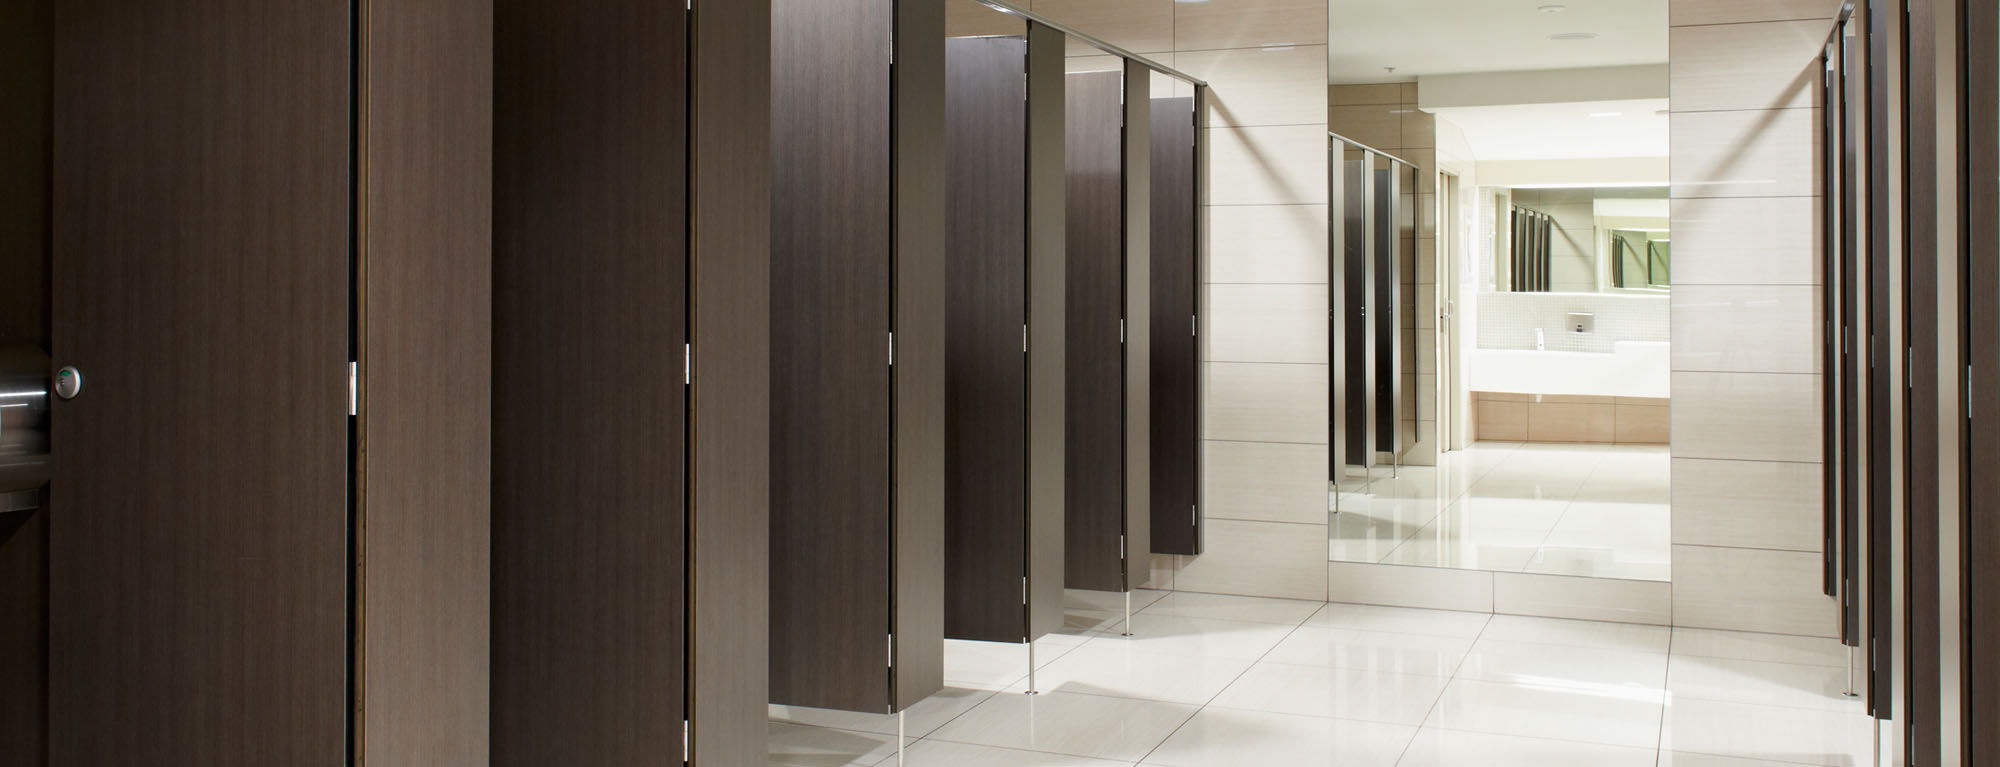 Ablution solutions toilet partitions resco new zealand for European bathroom stalls